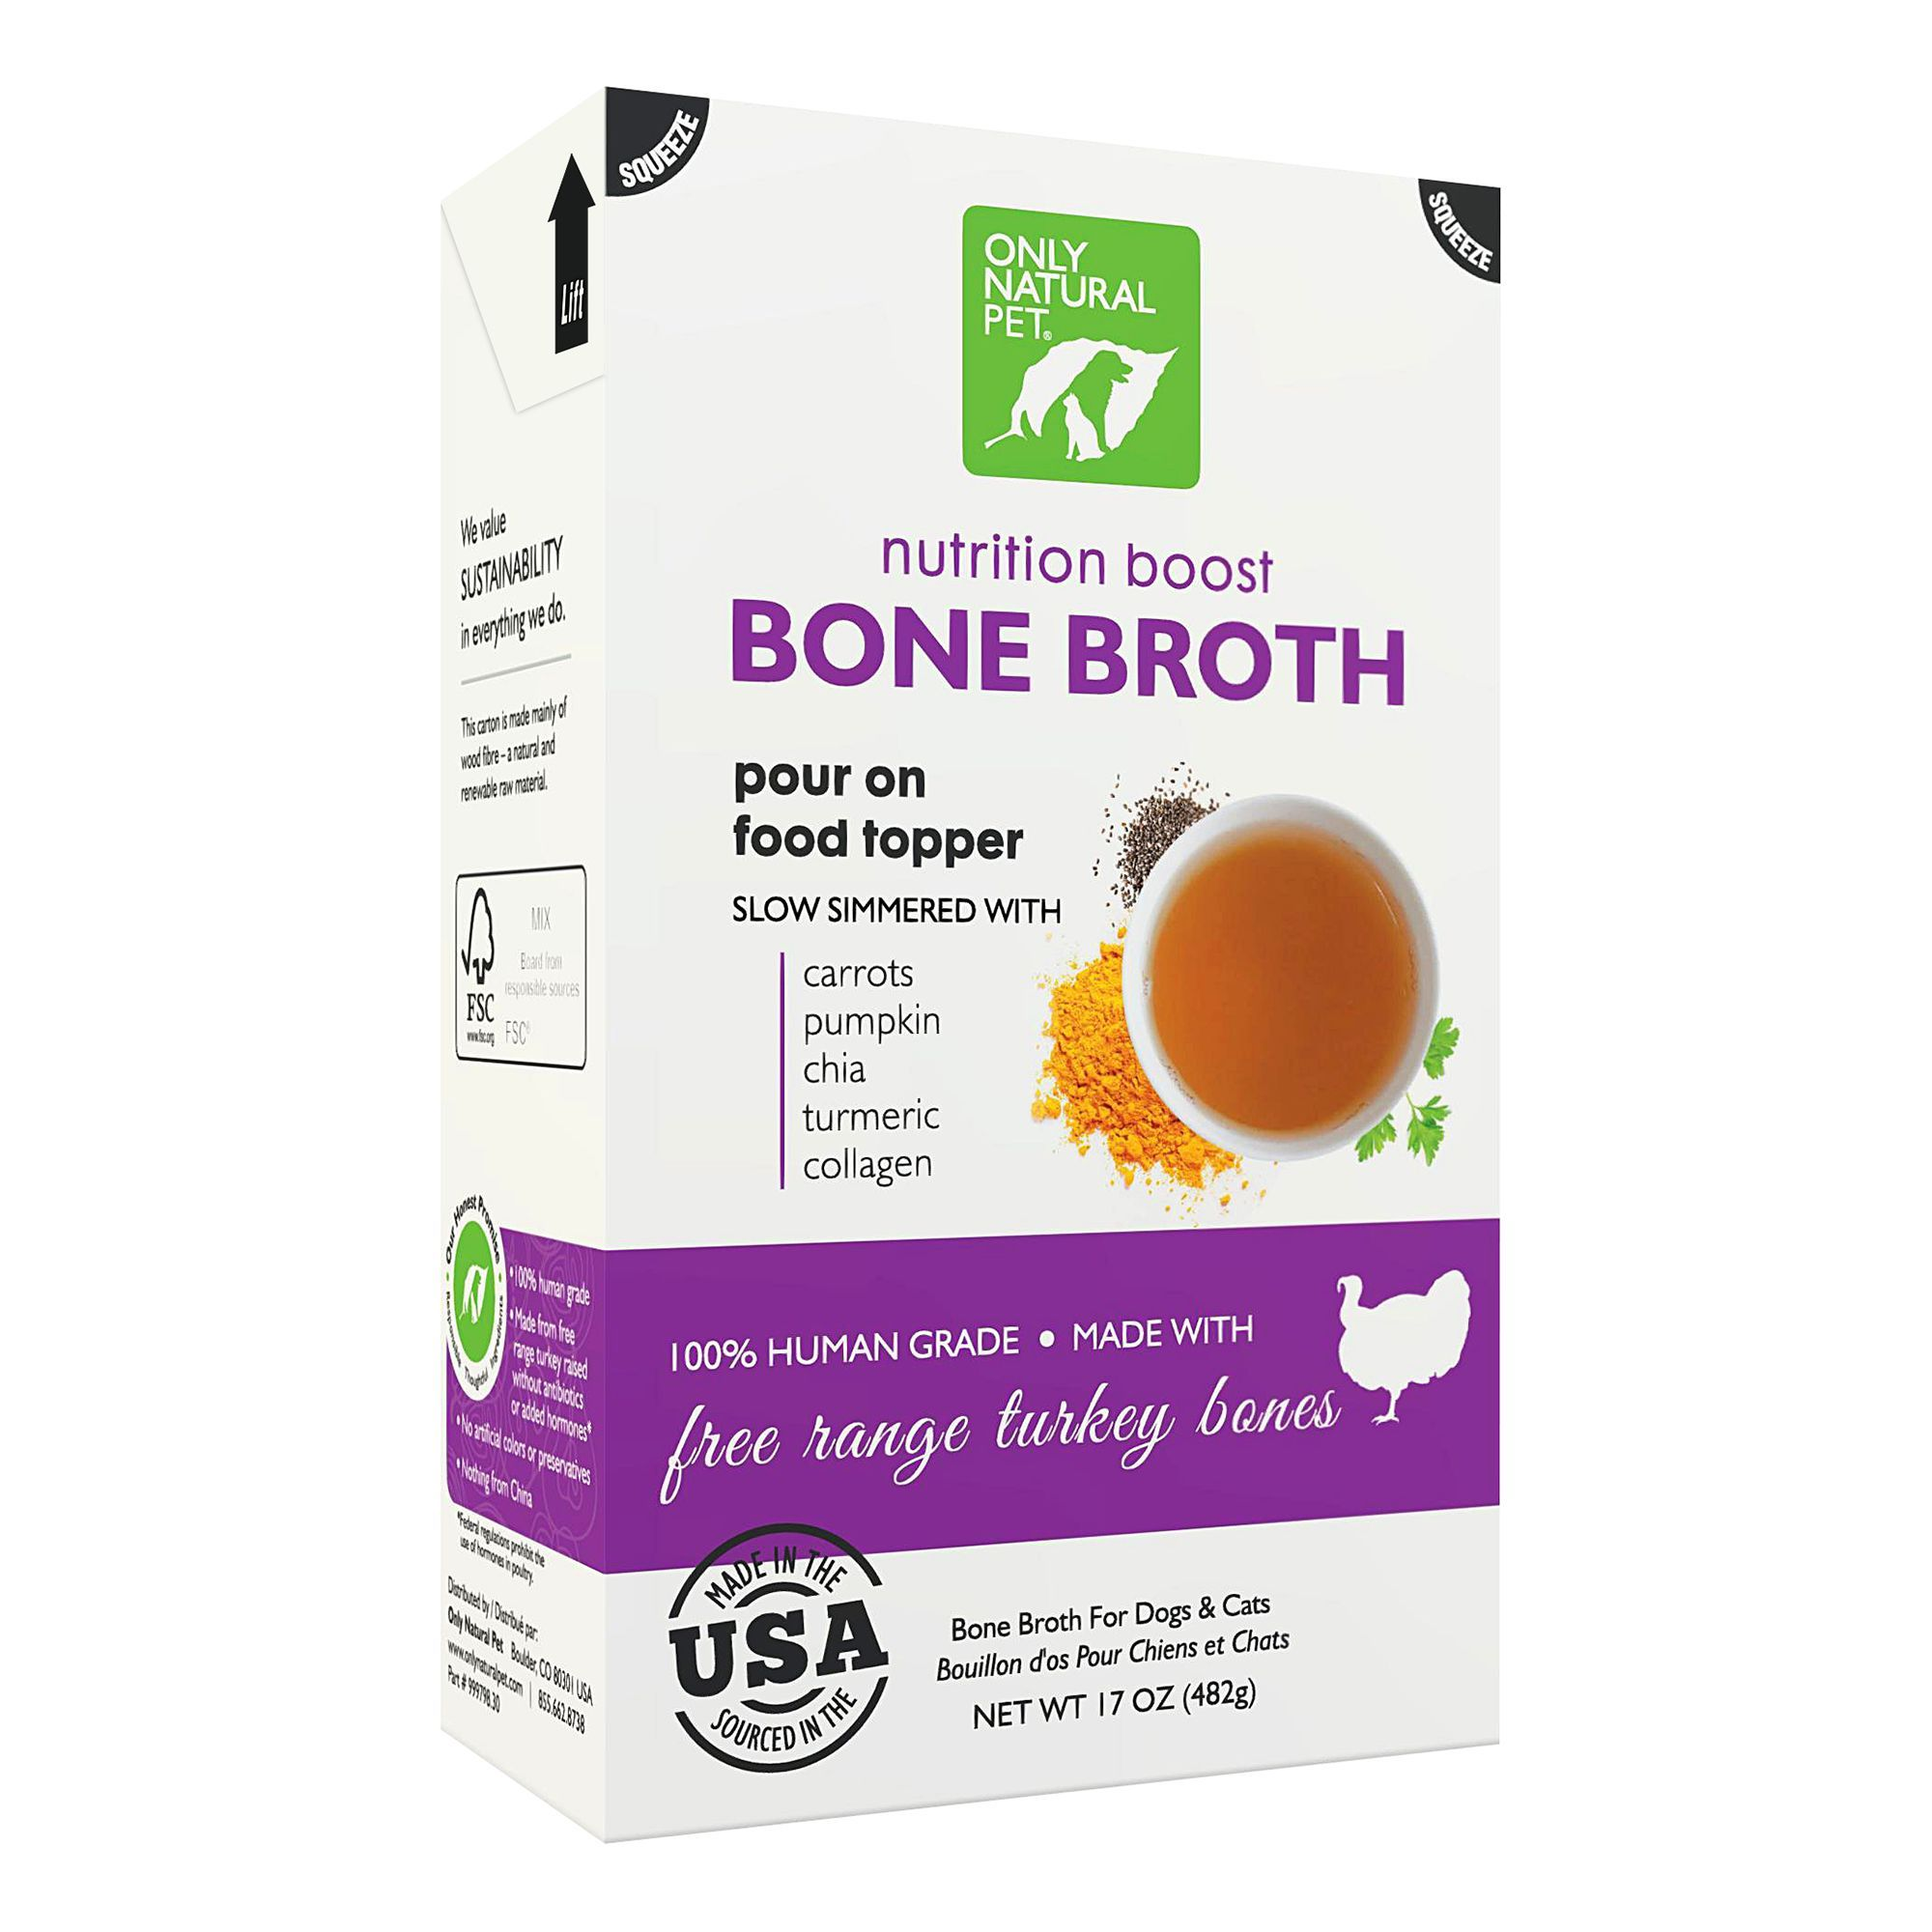 Only Natural Pet® Nutrition Boost Bone Broth Pet Food Topper - Free Range Turkey